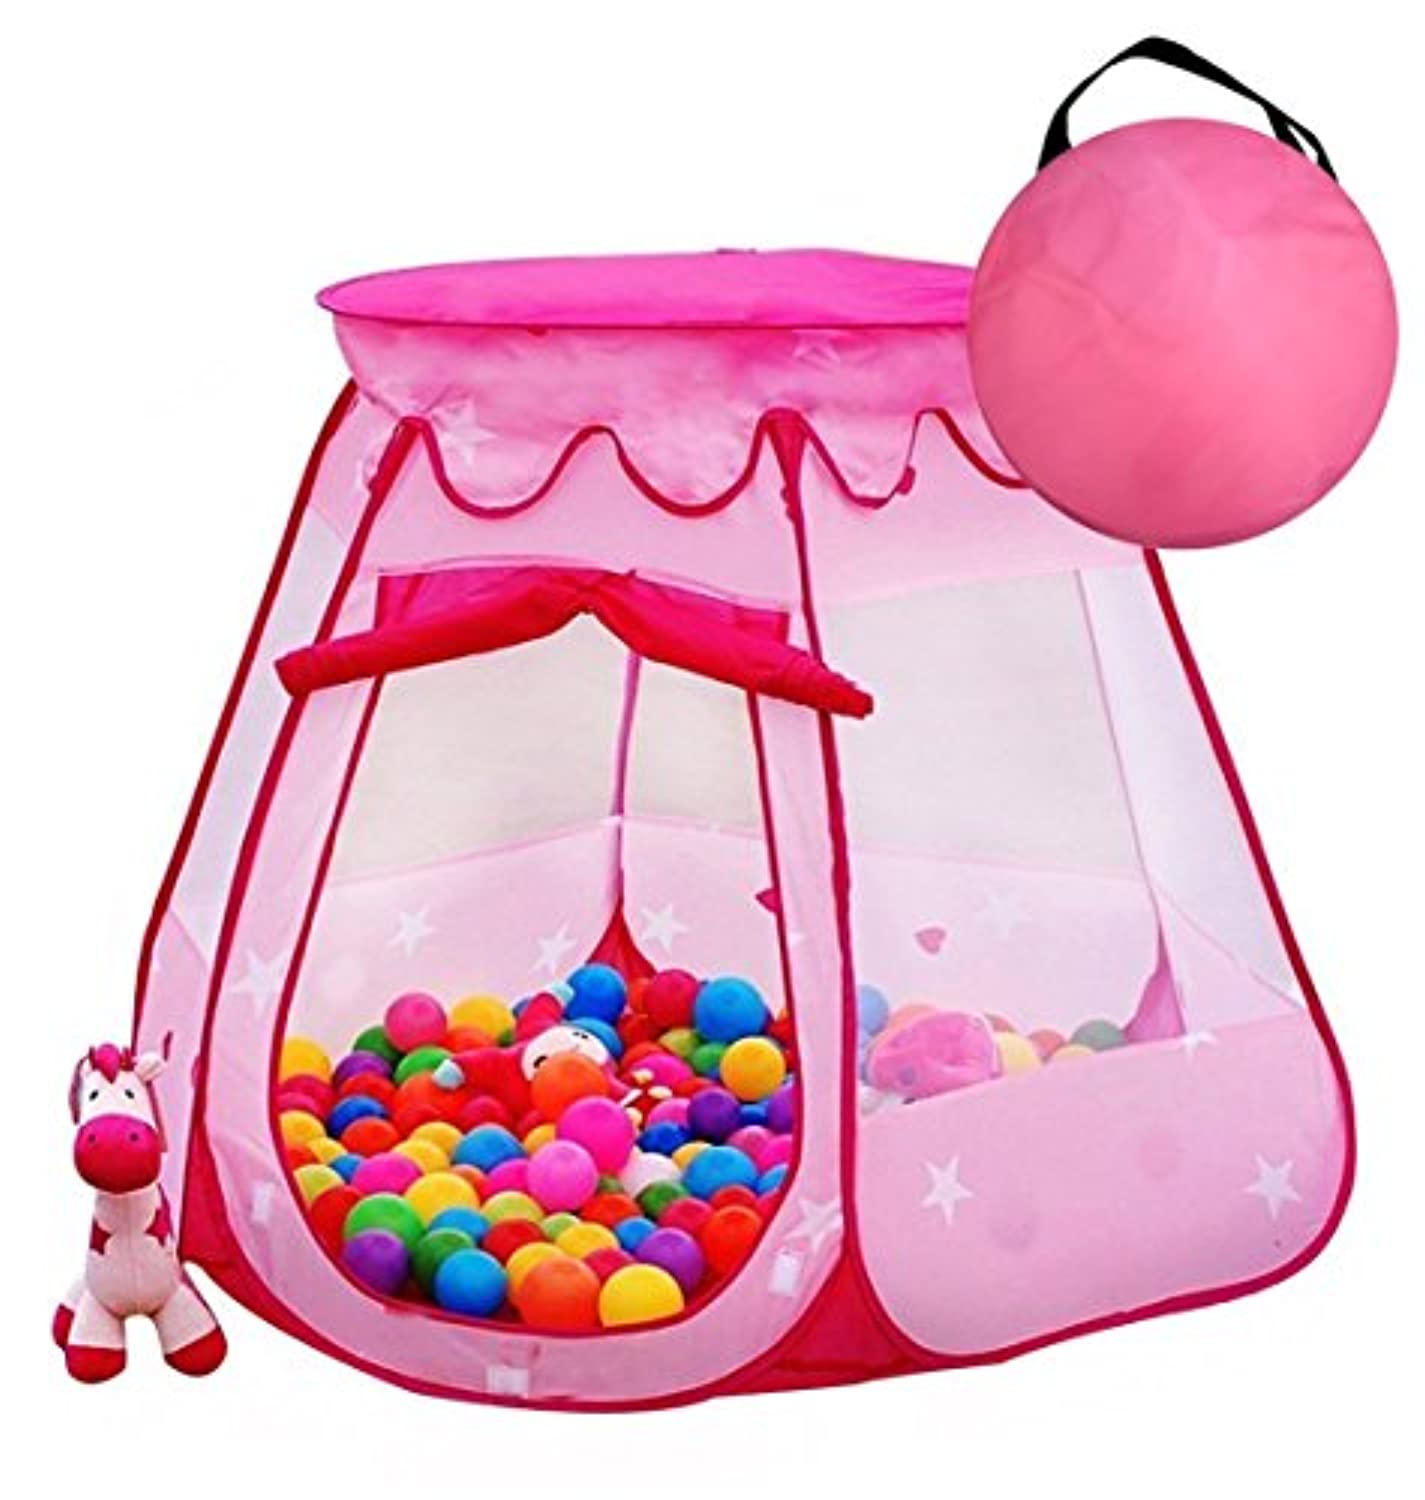 Pretty Six Sided Star Pop Up Play Tent for Girls